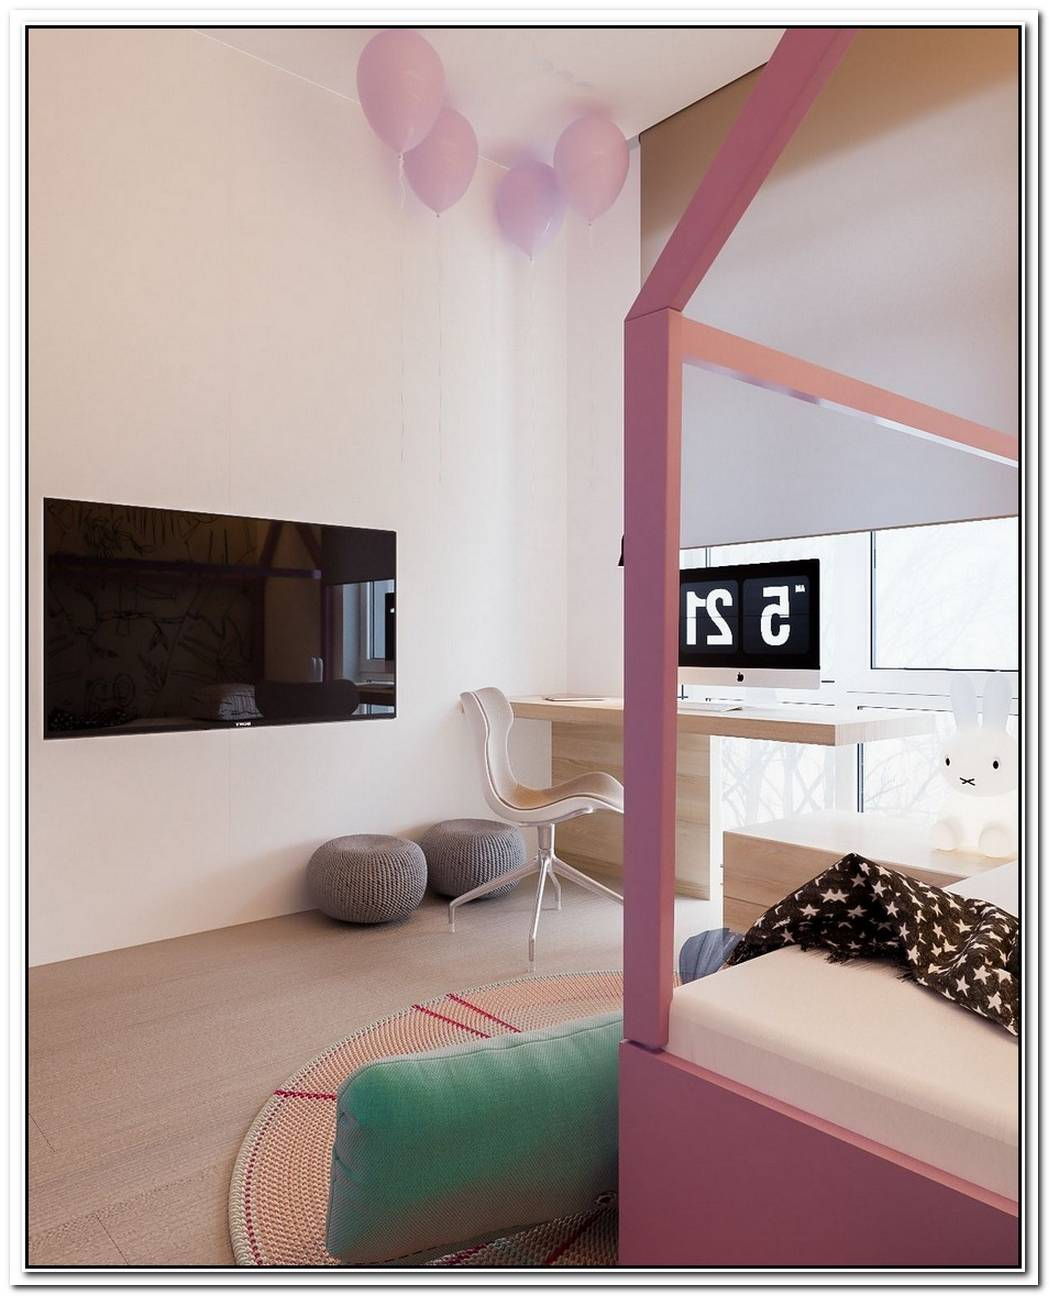 A Minimalist Family Home With A Bright Bedroom For The Kids